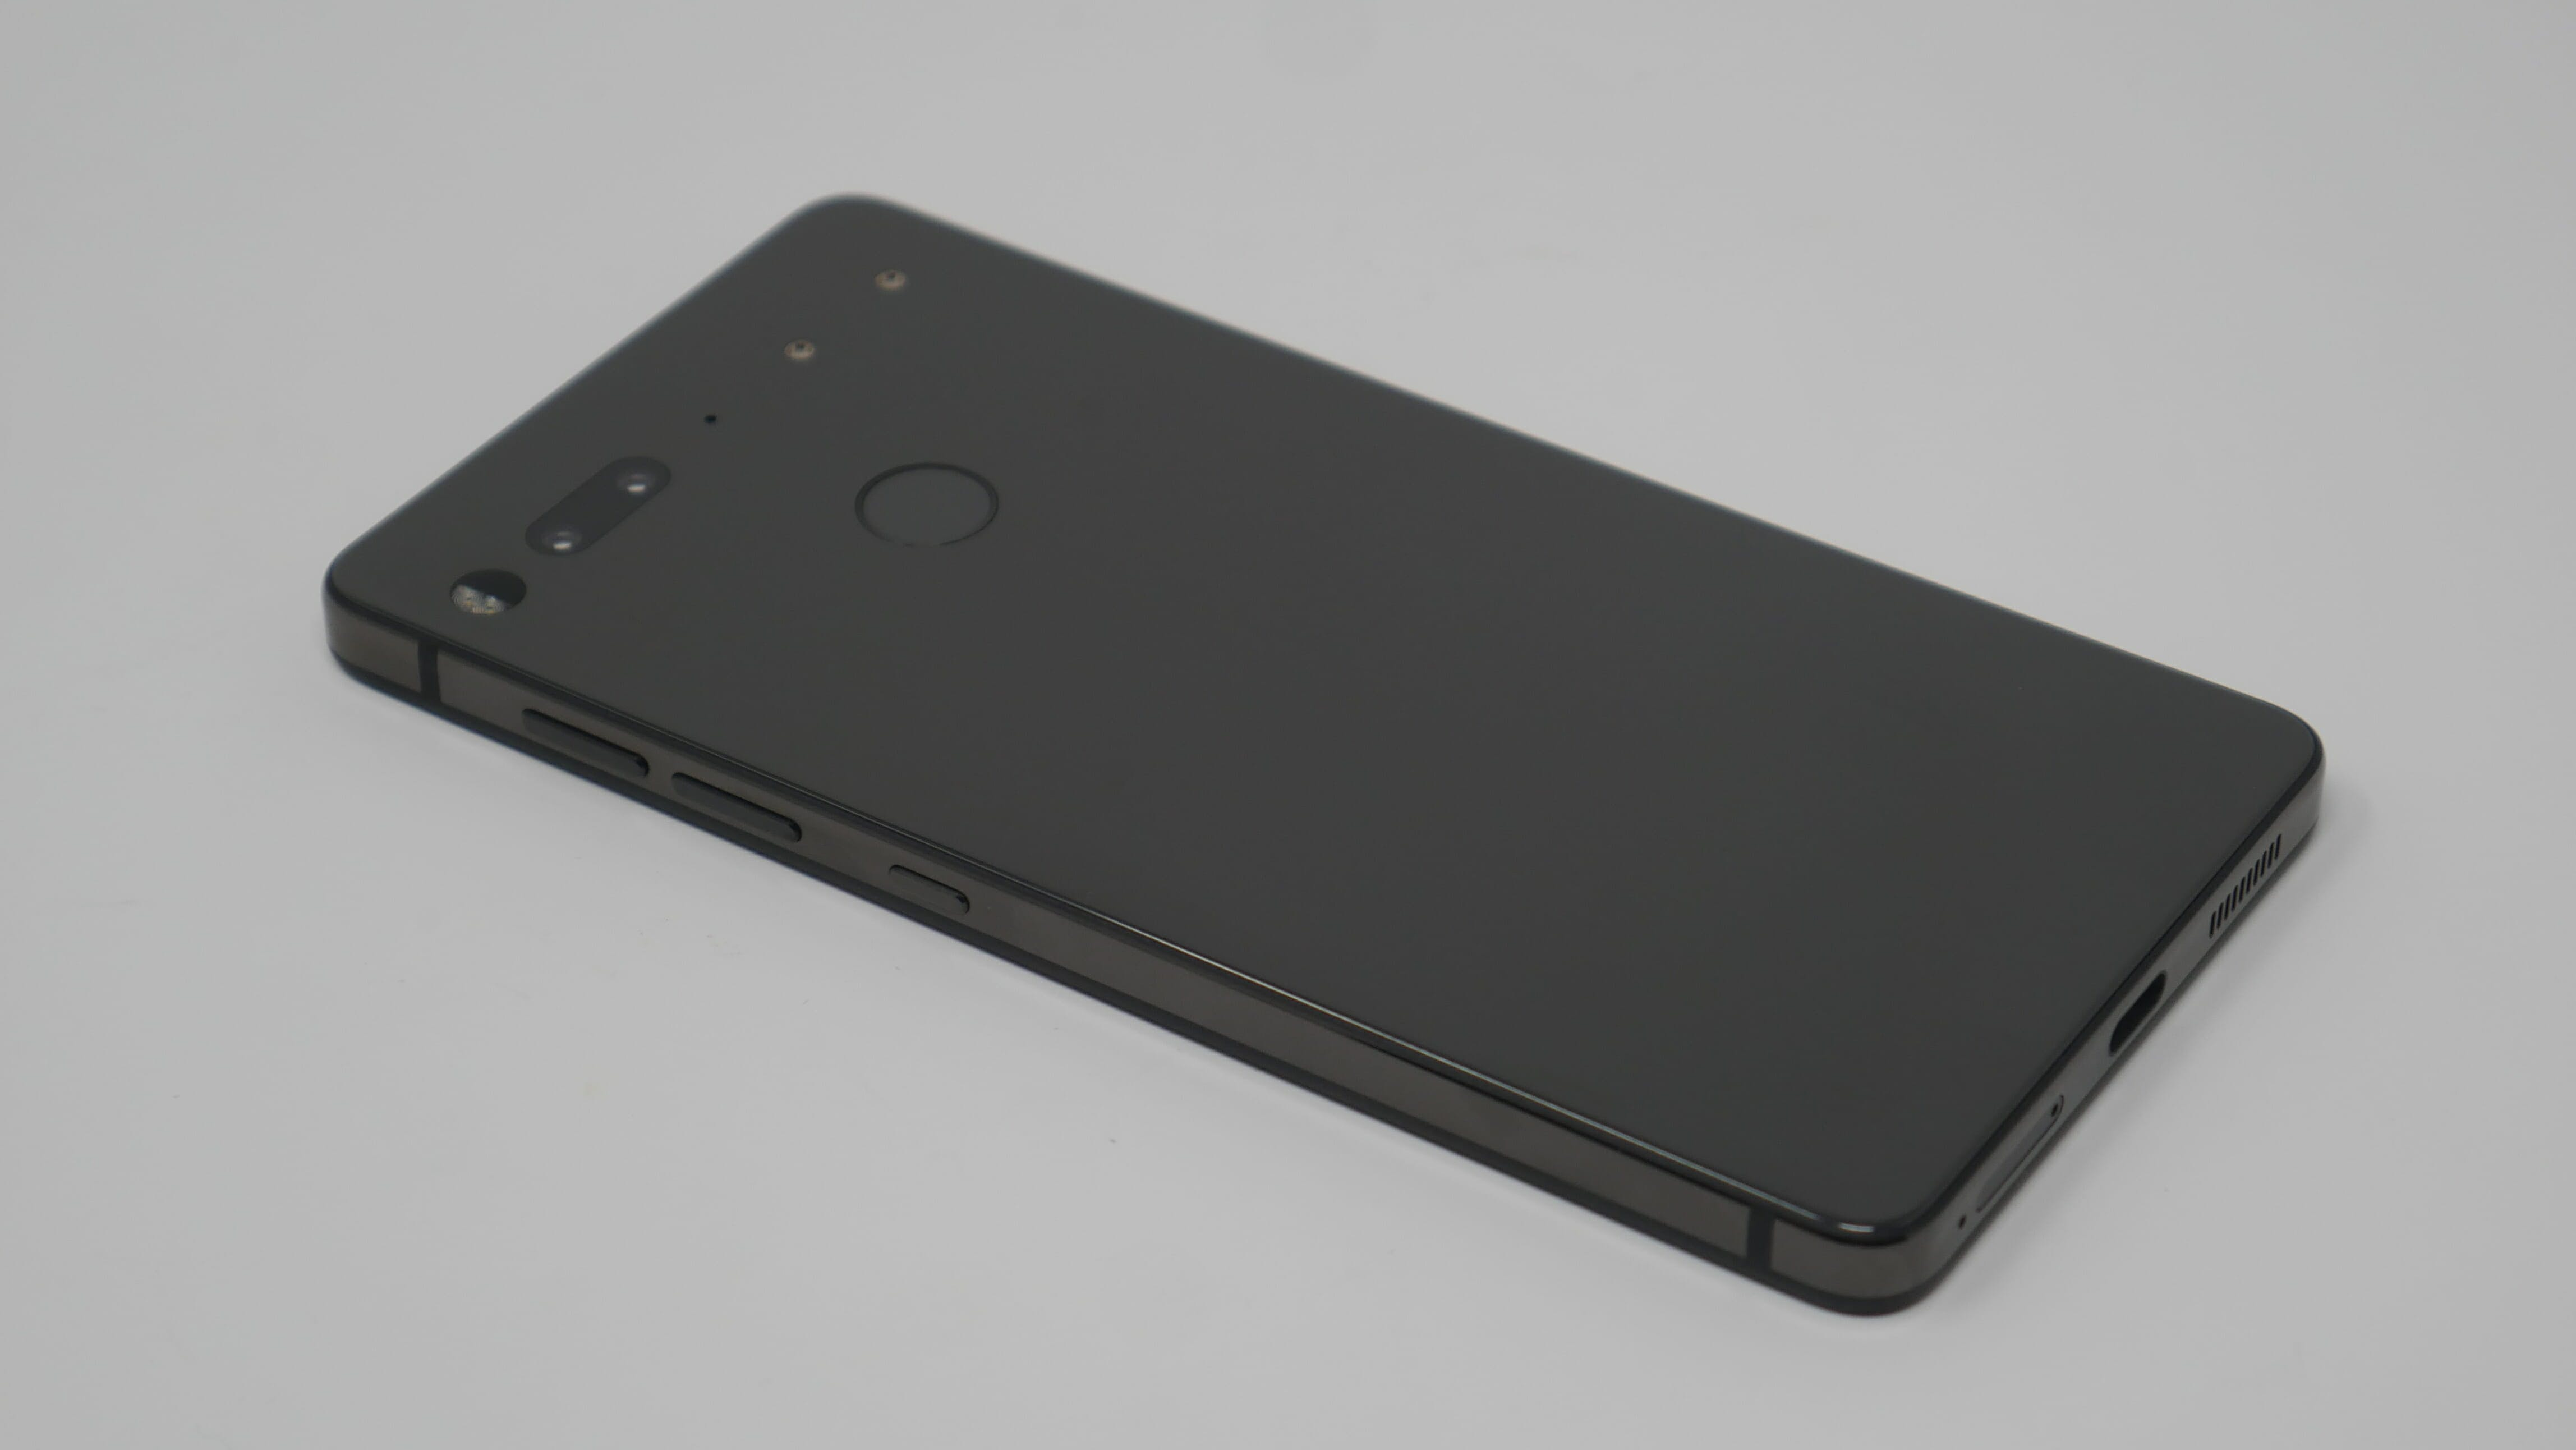 essential phone smartphone best android phone on a budget